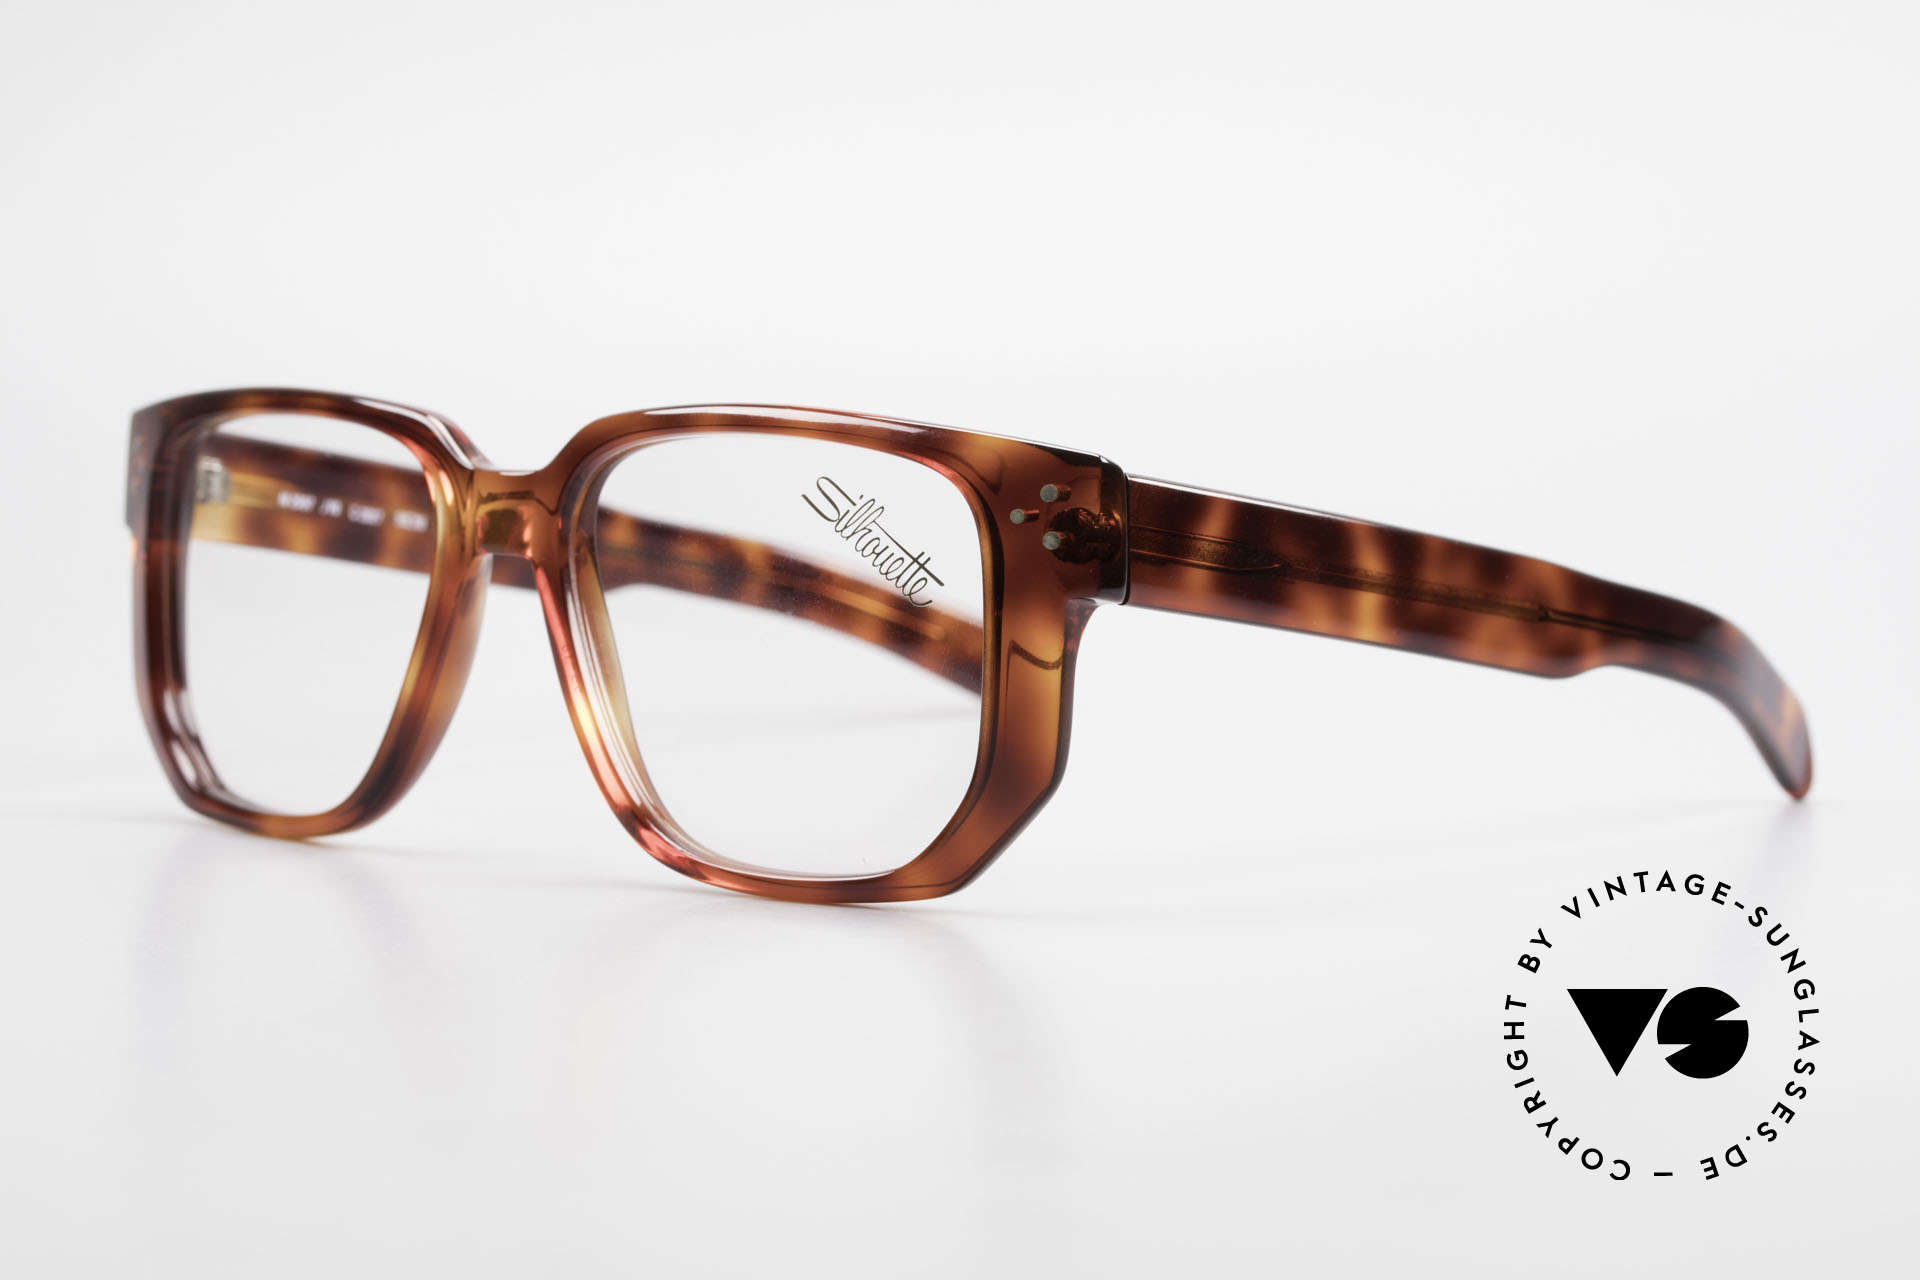 Silhouette M2097 1980's Old School Eyeglasses, a 1980's ORIGINAL (accordingly in TOP quality), Made for Men